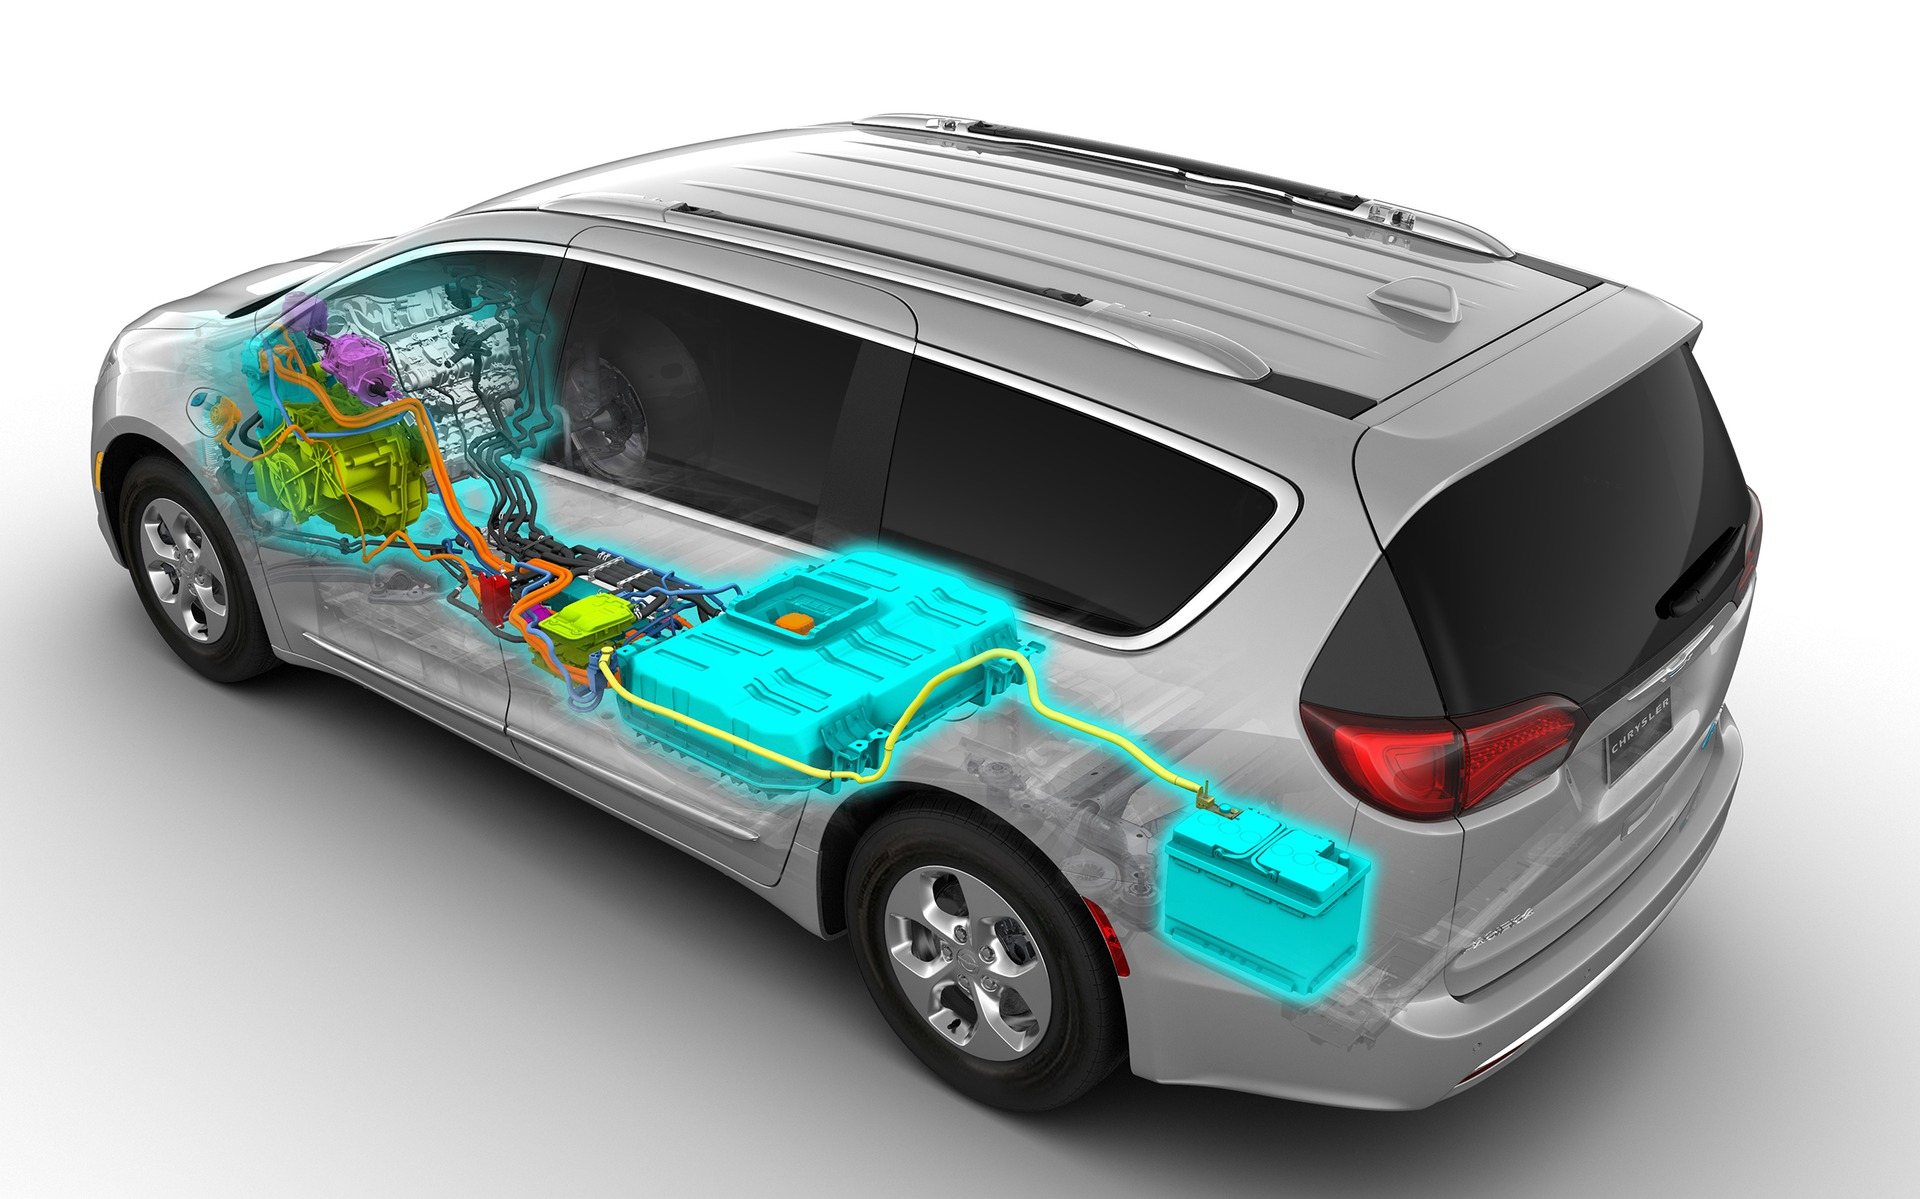 Chrysler Pacifica hybride 2019 : la familiale électrique 350962_2019_Chrysler_Pacifica